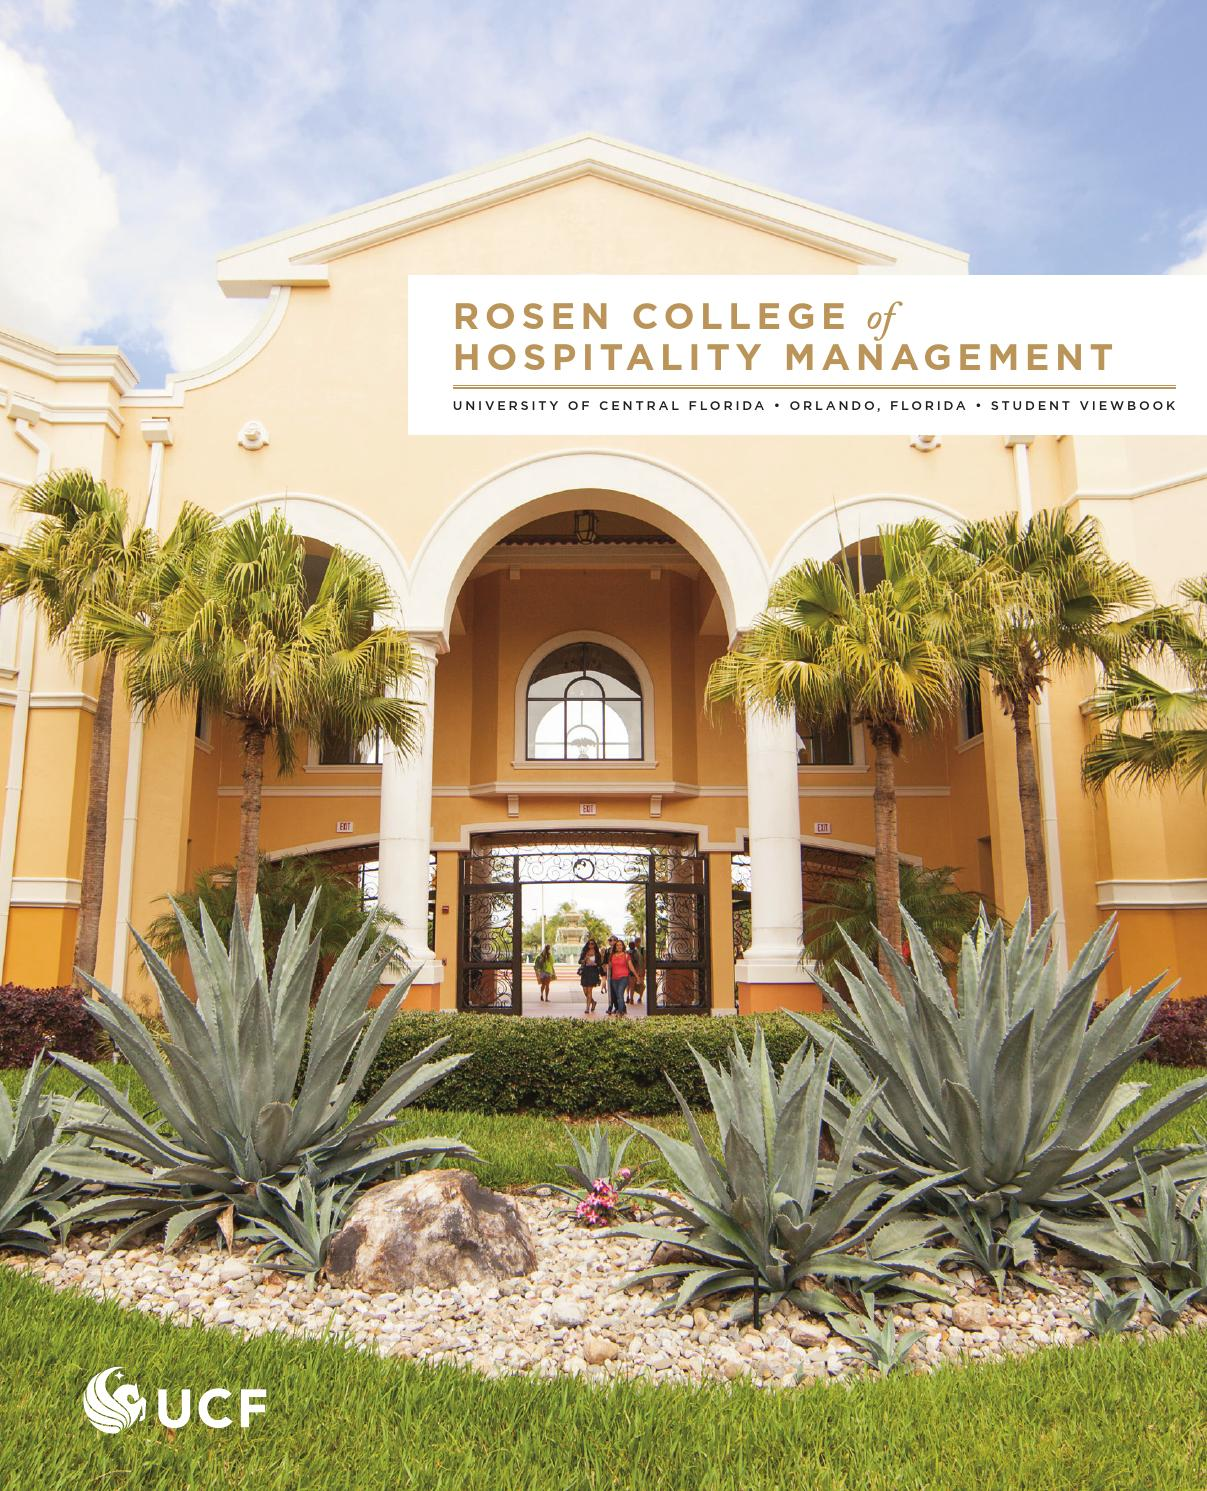 Issuu 2014 Rosen College Of Hospitality Management Viewbook By University Of Central Florida